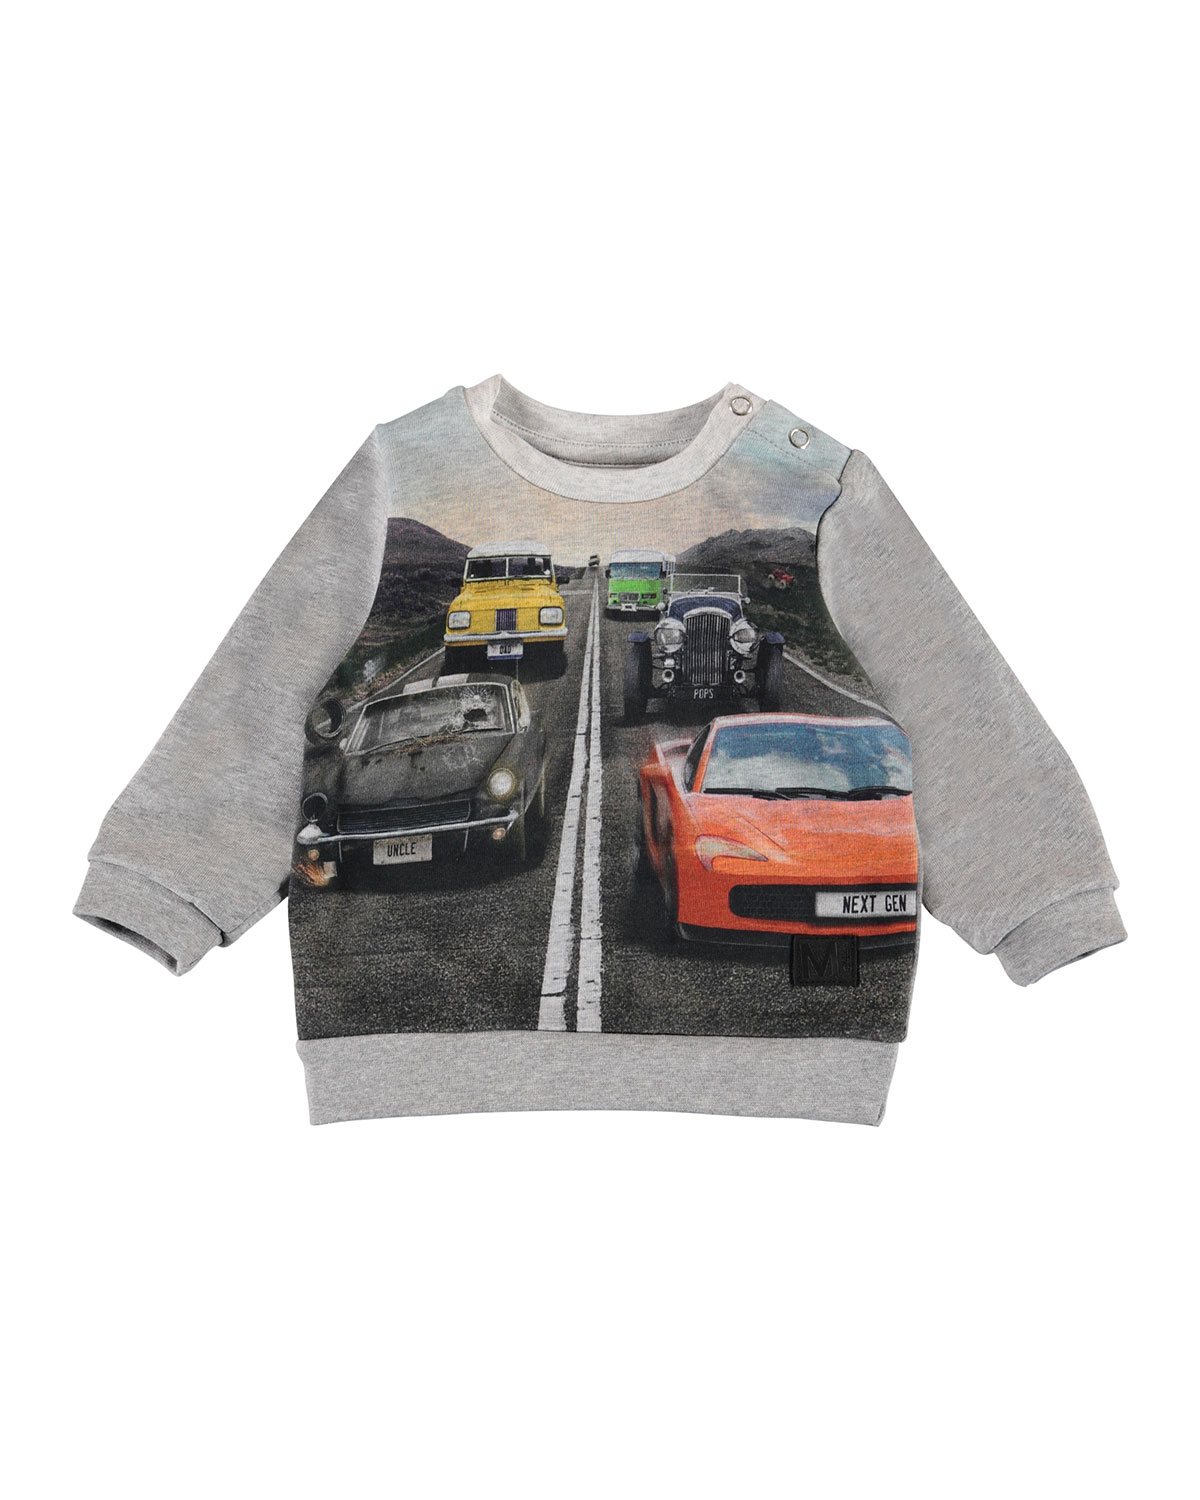 Molo Boy's Drive Cars Print Tee, Size 6-24 Months